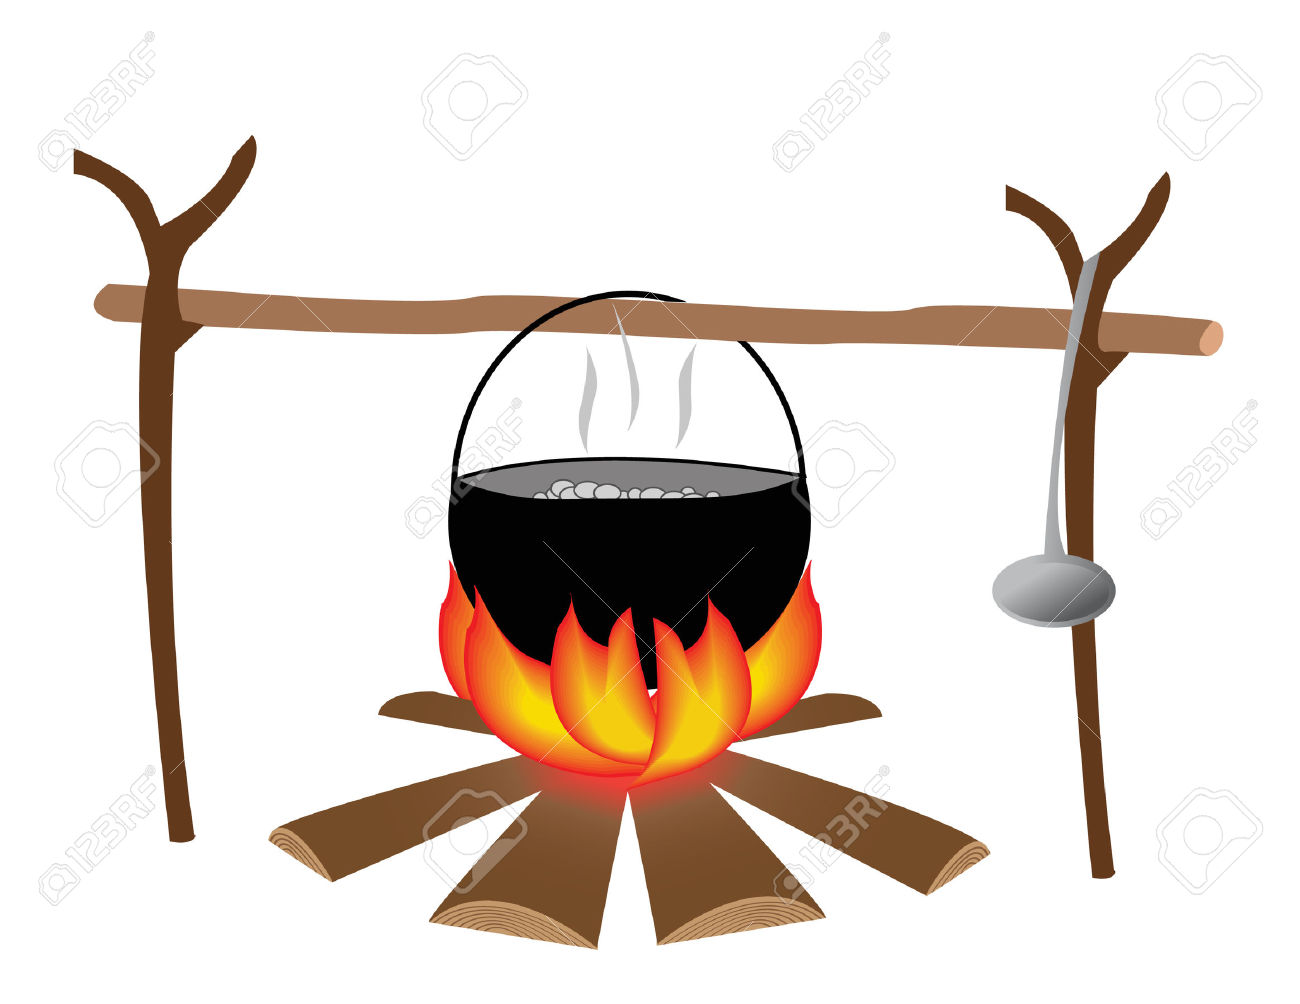 Cooking pot on fire clipart 2 » Clipart Station.